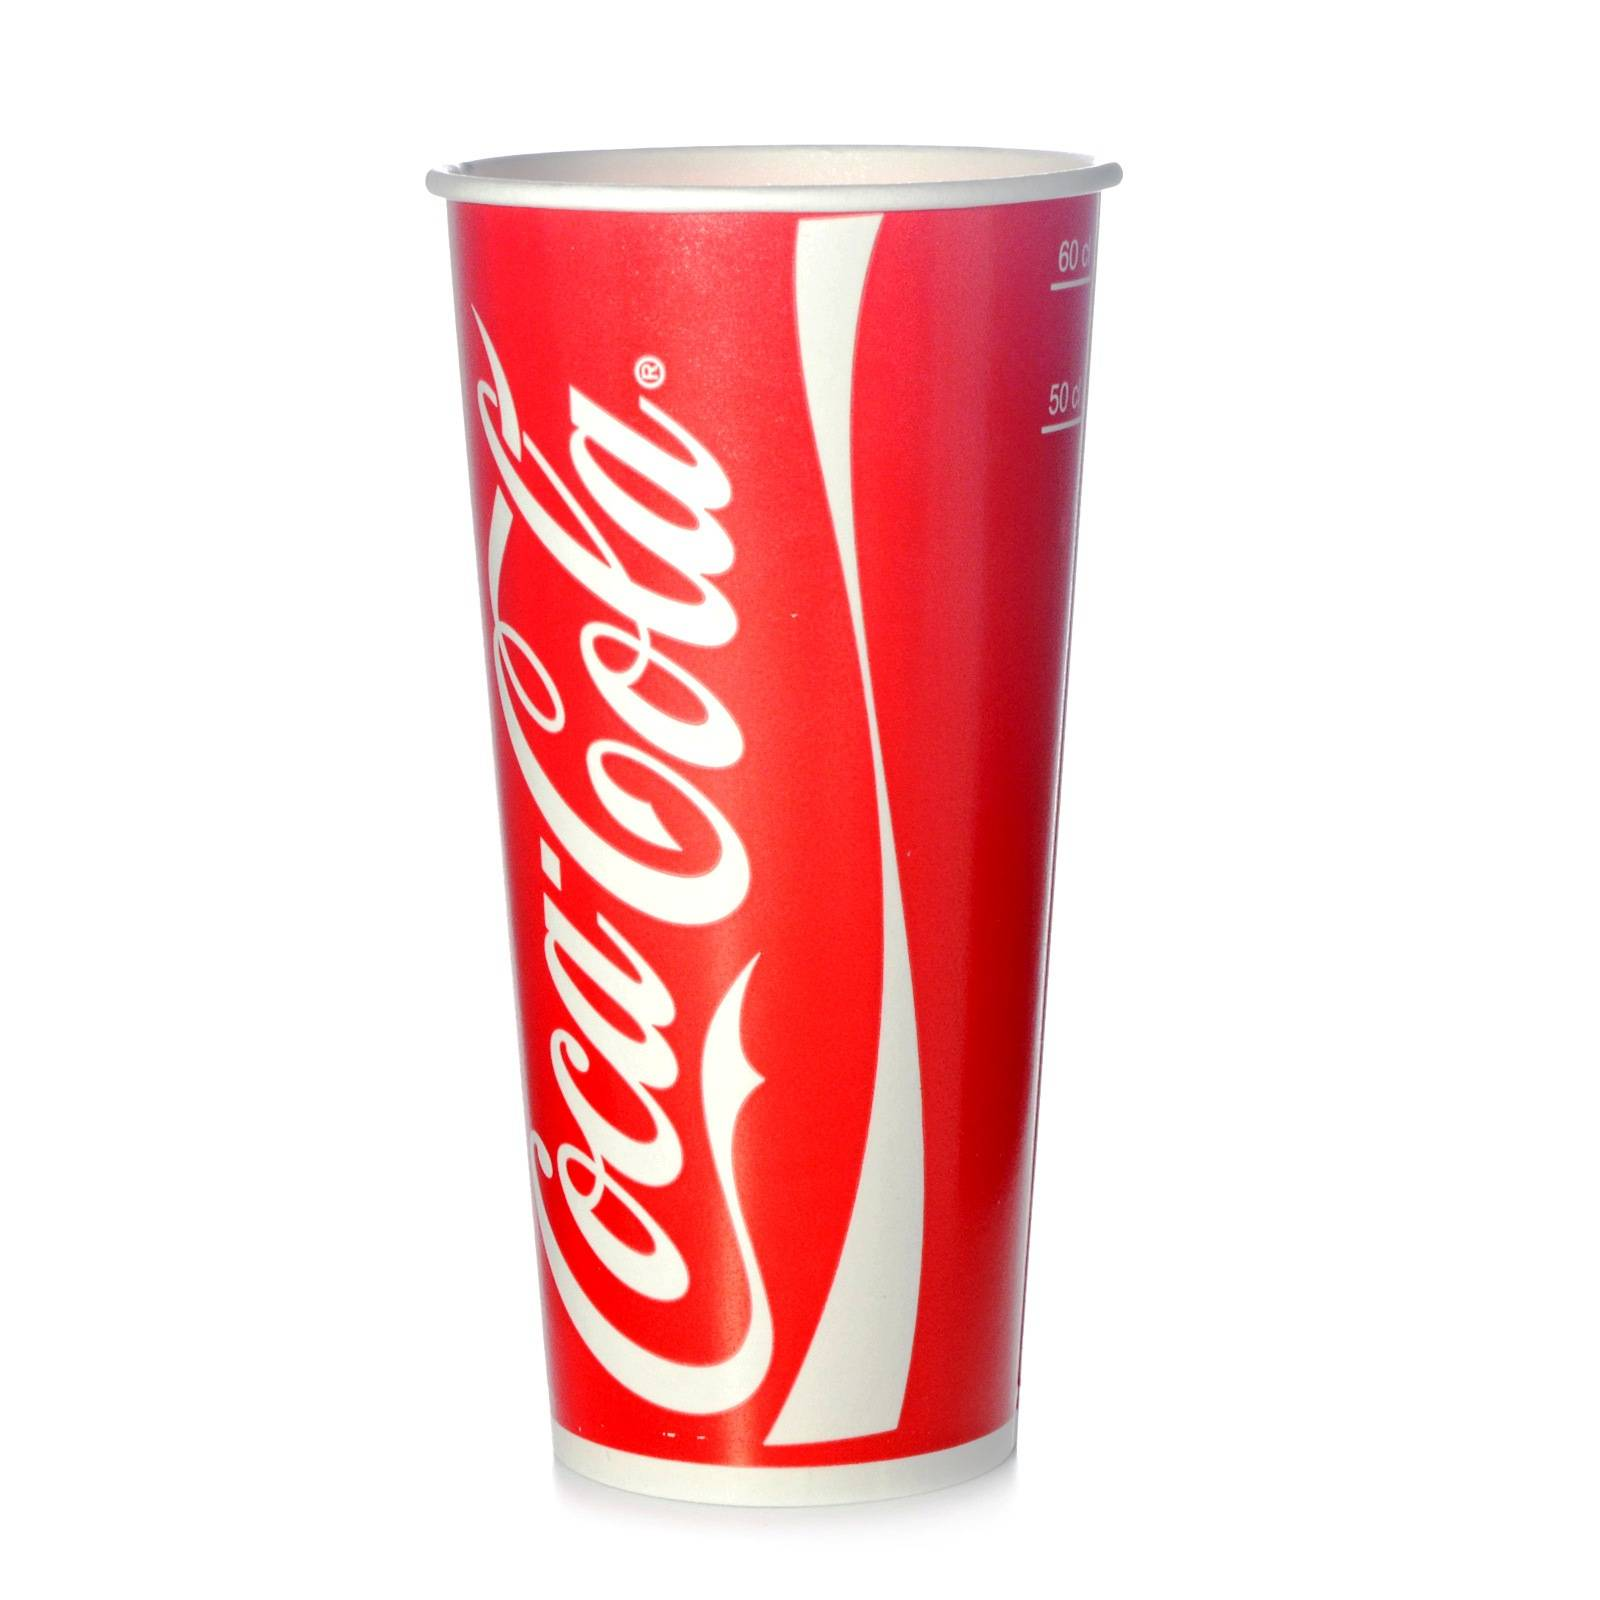 coca cola becher 0 5 l pappbecher trinkbecher 50 kaltgetr nkebecher 500 ml ebay. Black Bedroom Furniture Sets. Home Design Ideas